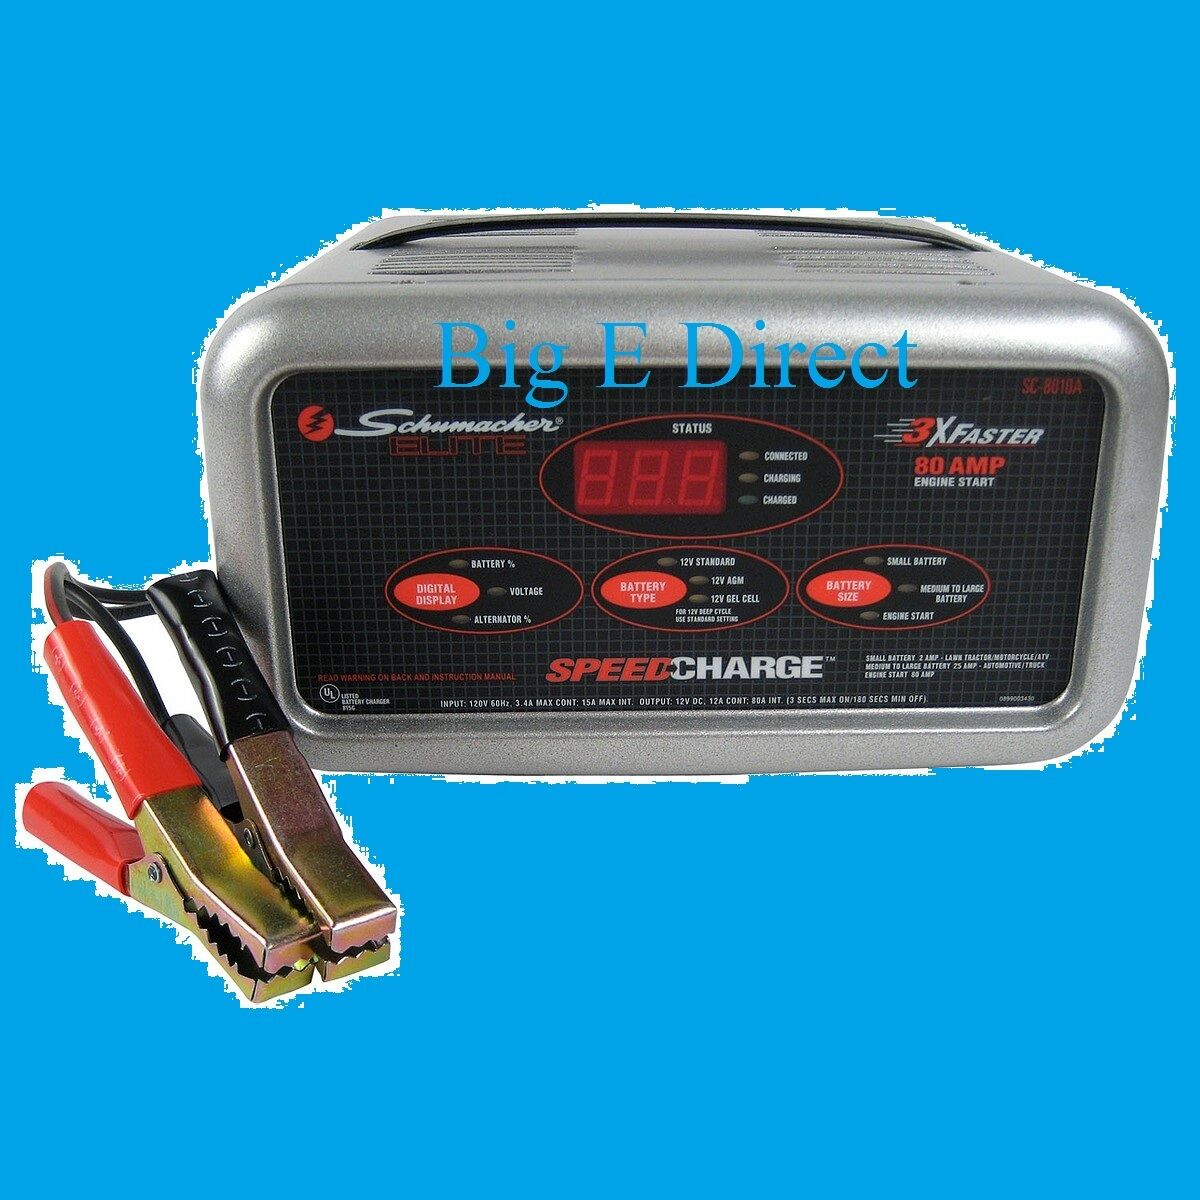 Best battery charger for deep cycle marine